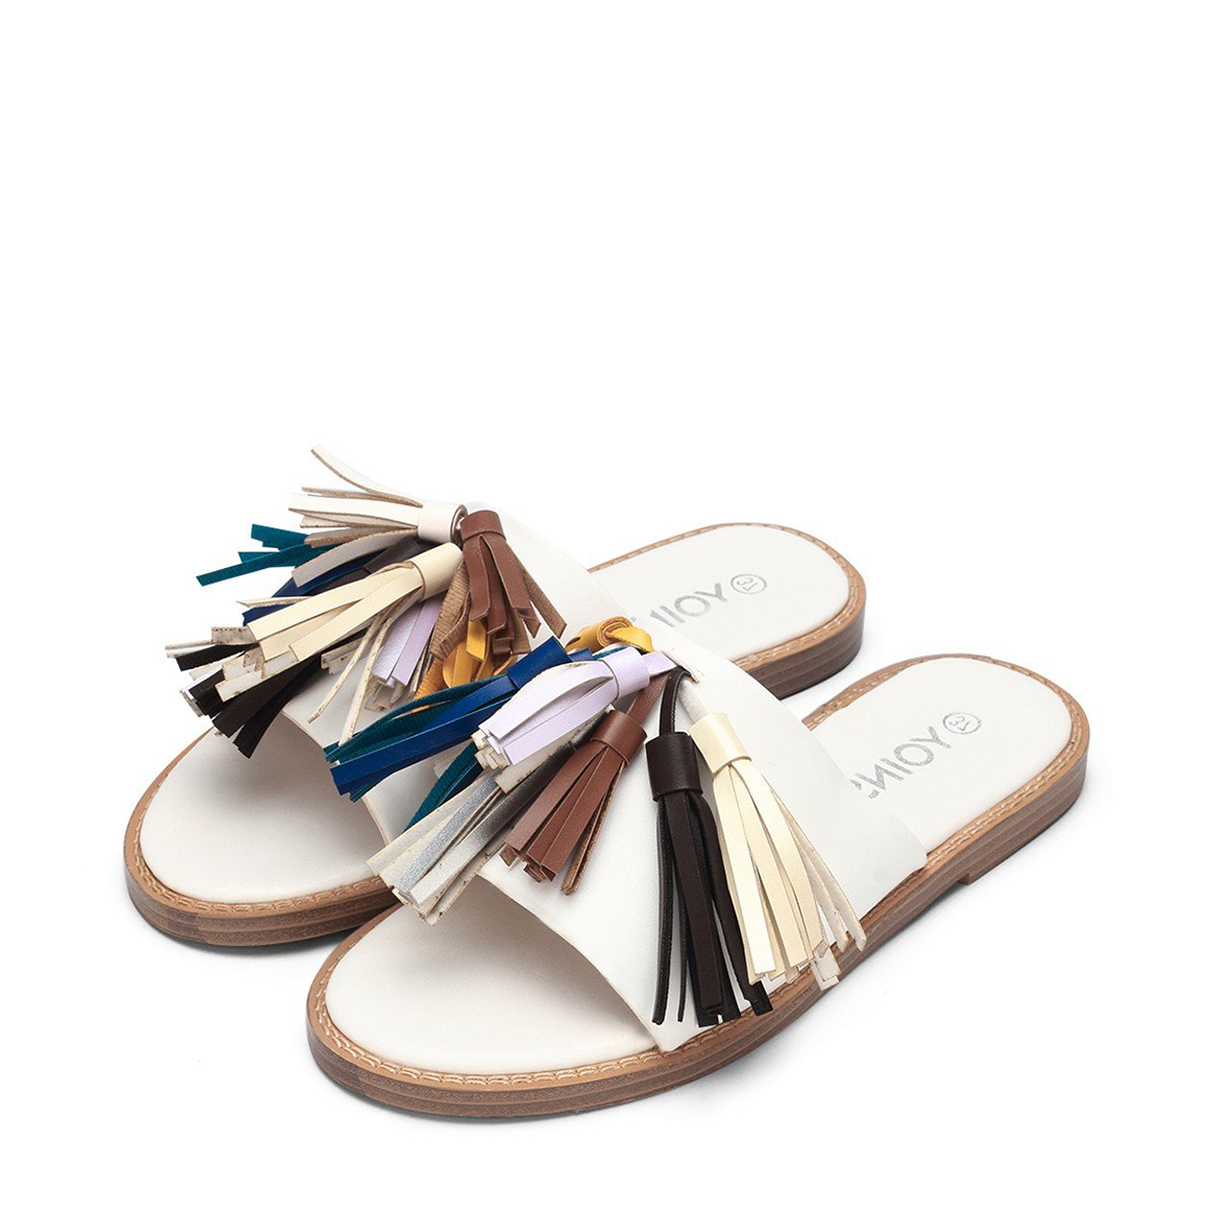 White Leather Look Flat Slippers With Multi-colored Tassel